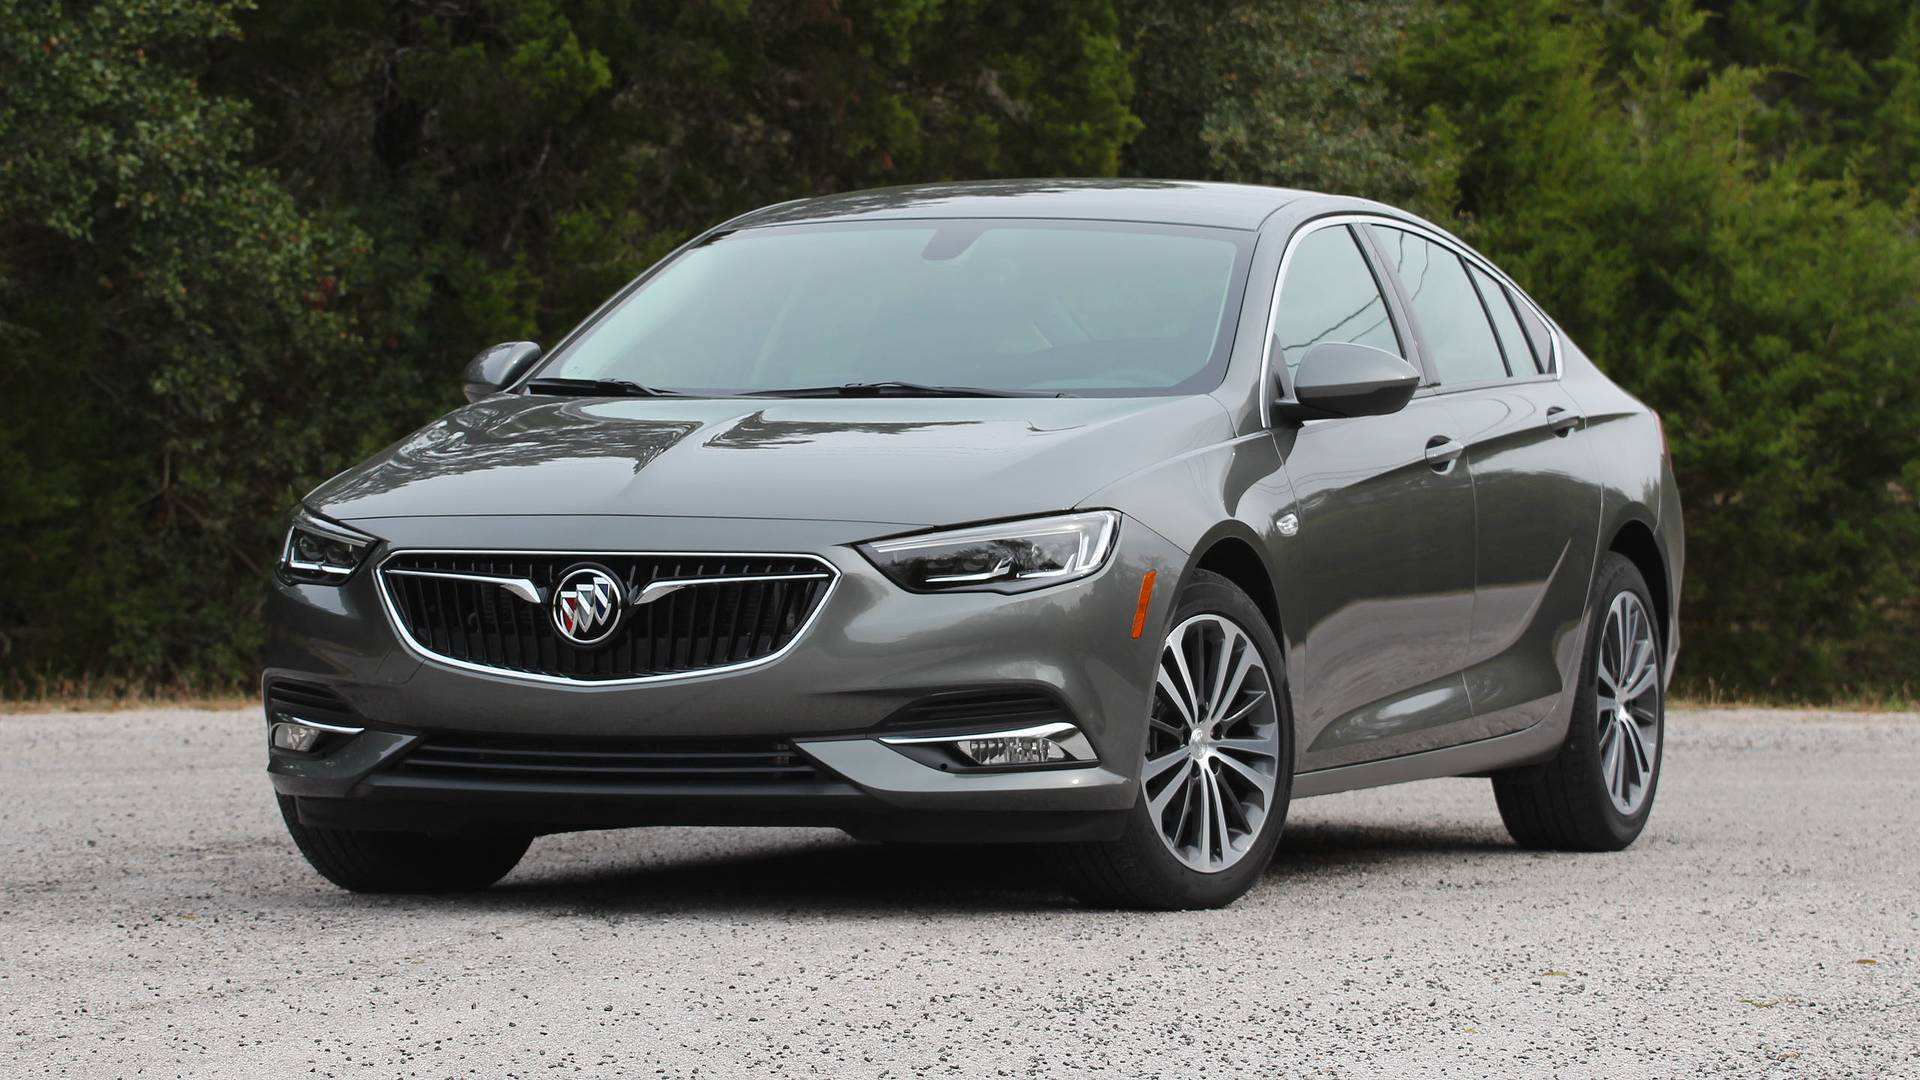 85 Best Review 2019 Buick Regal Review by 2019 Buick Regal